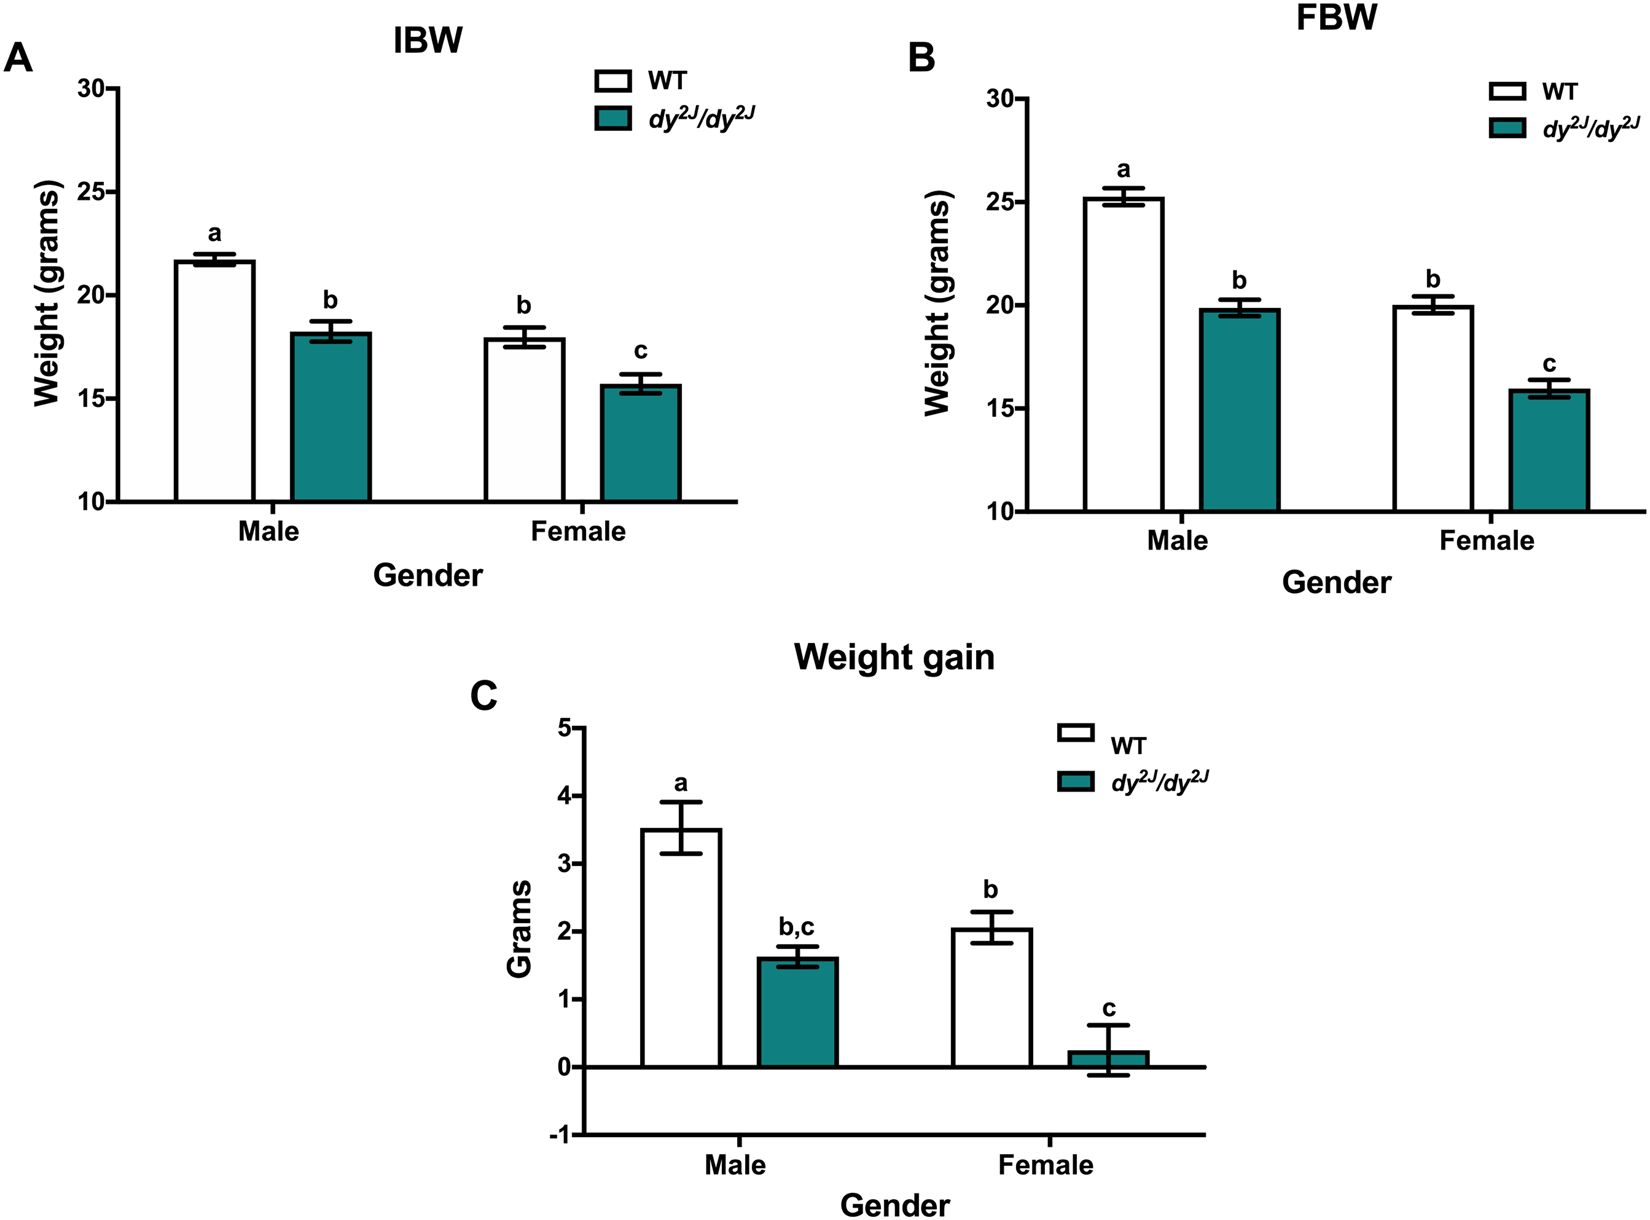 Effects Of Metformin On Congenital Muscular Dystrophy Type 1a. Effects Of Metformin On Congenital Muscular Dystrophy Type 1a Disease Progression In Mice A Gender Impact Study Scientific Reports. Wiring. Sirius S1 Wiring Diagram At Scoala.co